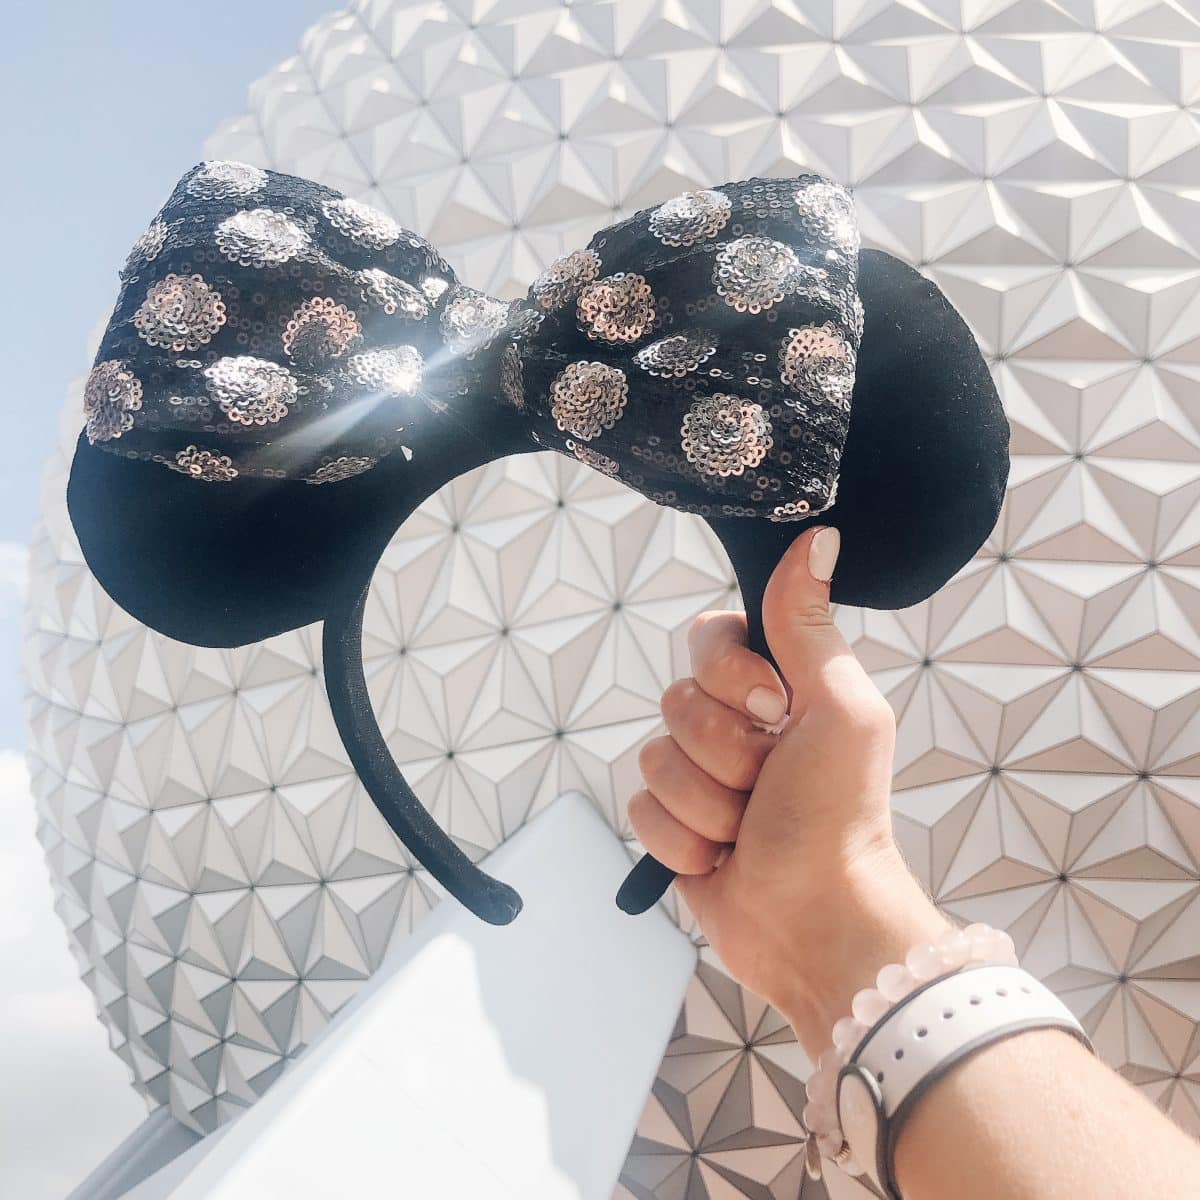 Houston lifestyle blogger Meg O. shares her family babymoon travel experience to Walt Disney World